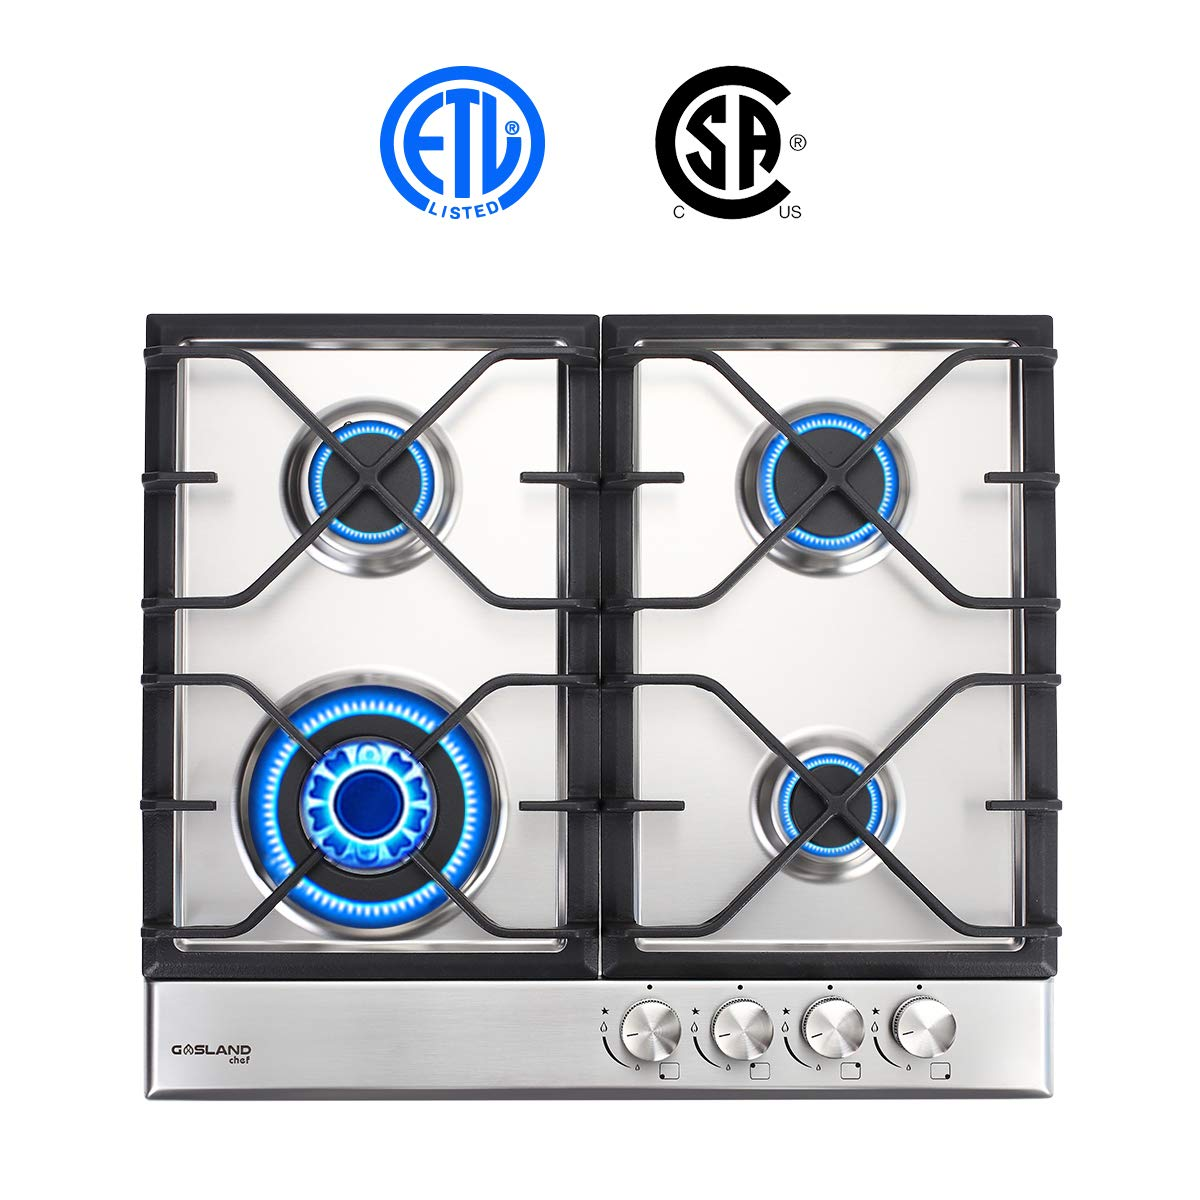 Gasland Chef Gh60sf Gas Cooktop 24 Quot Built In Stove Top